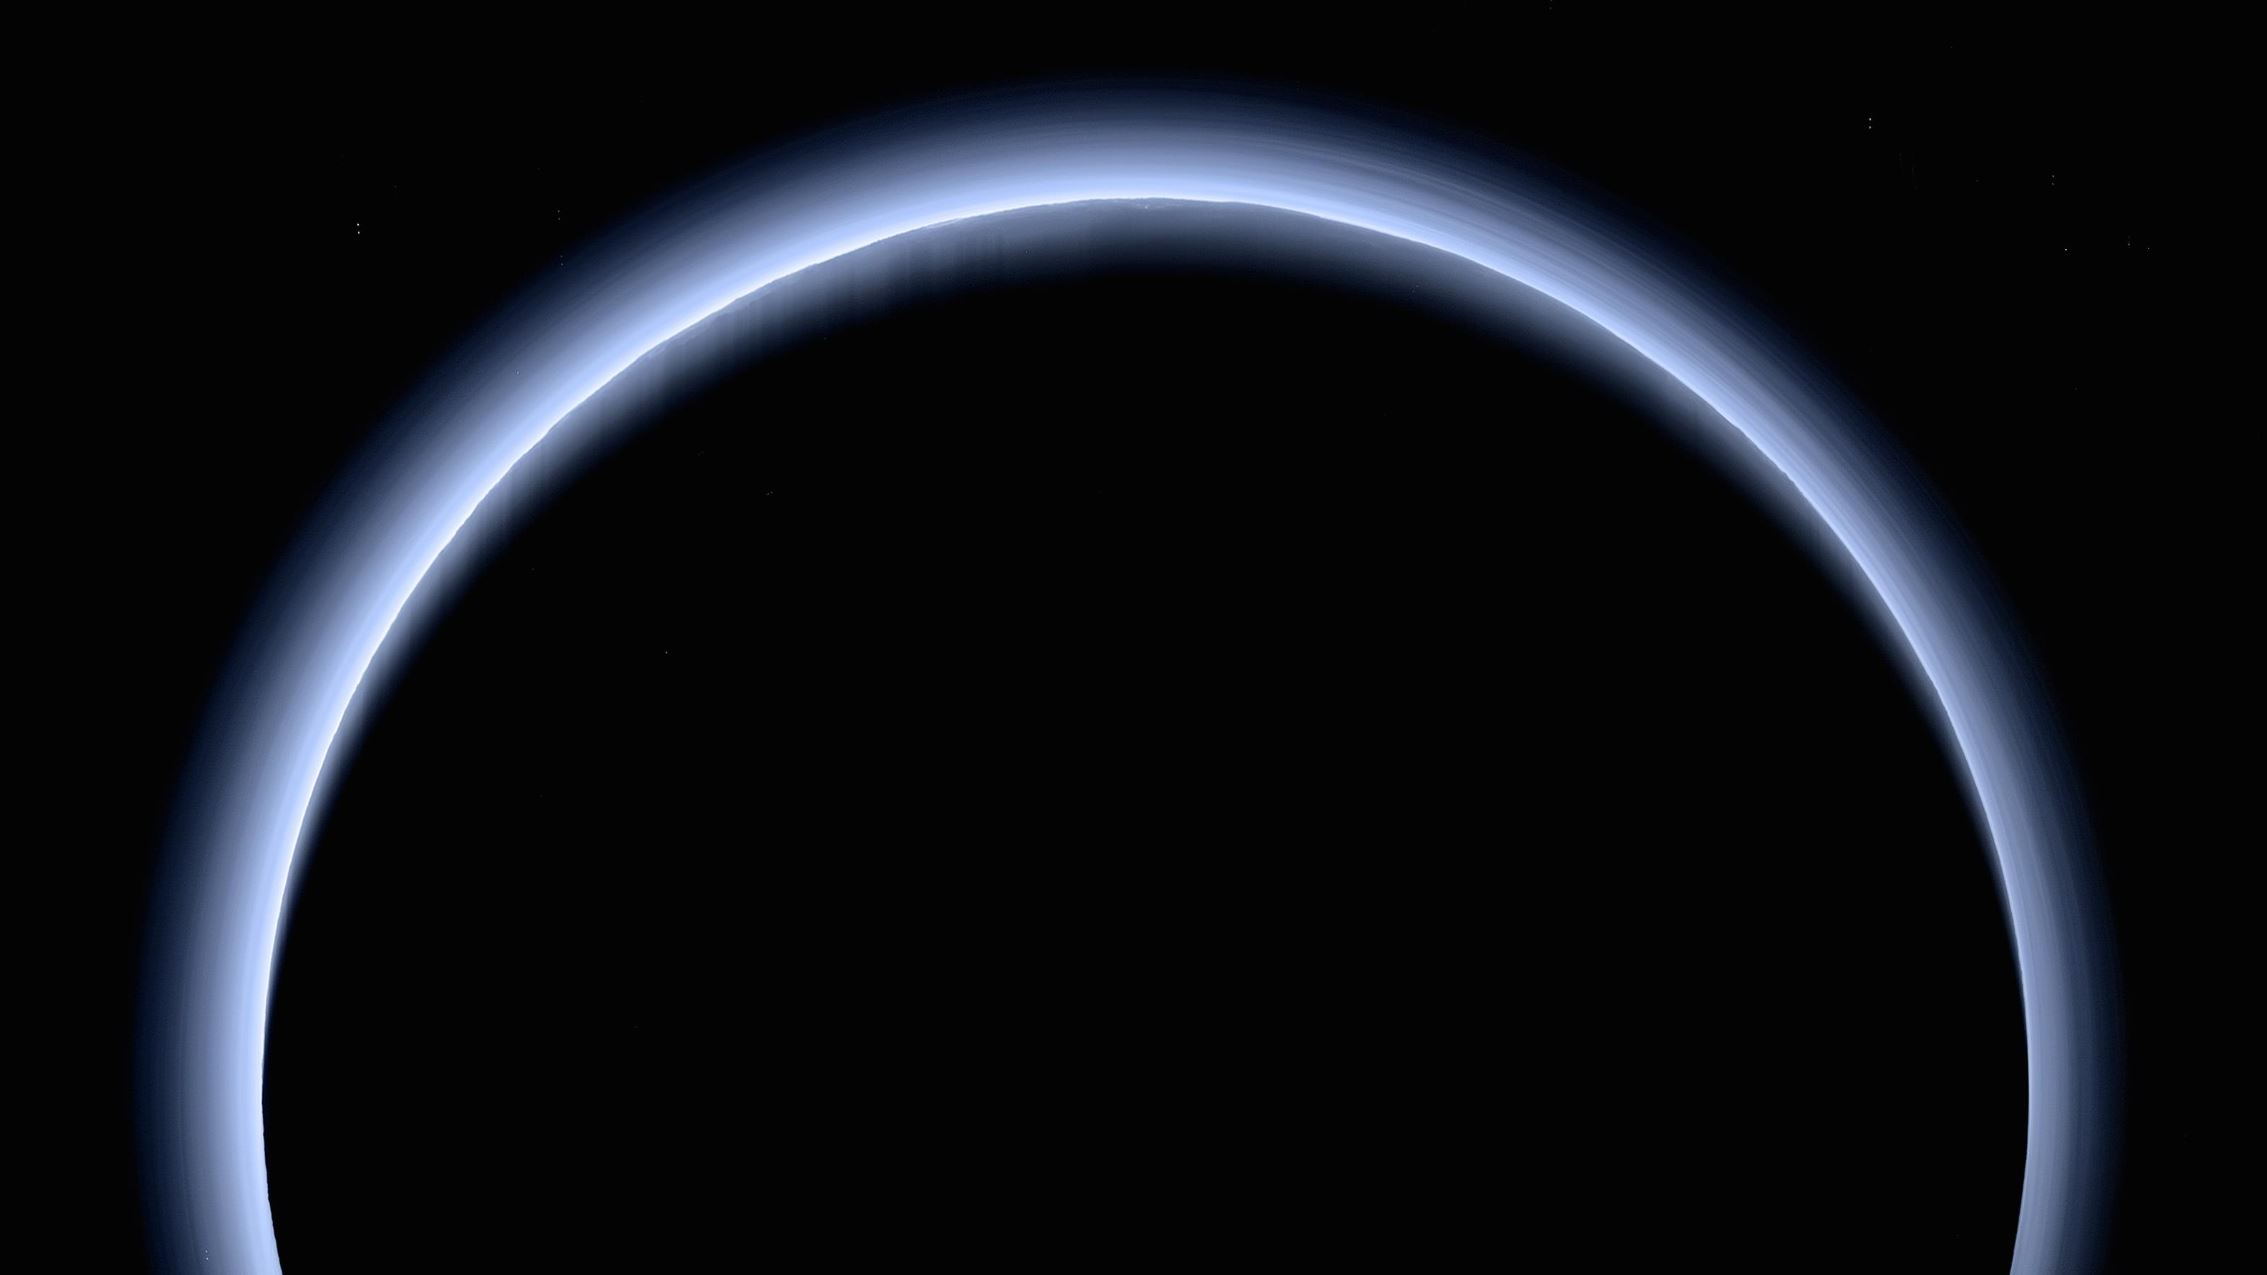 The spectacular layers of blue haze in Pluto's atmosphere, captured by NASA's New Horizons spacecraft.- Image Credit:  NASA/Johns Hopkins University Applied Physics Laboratory/Southwest Research Institute